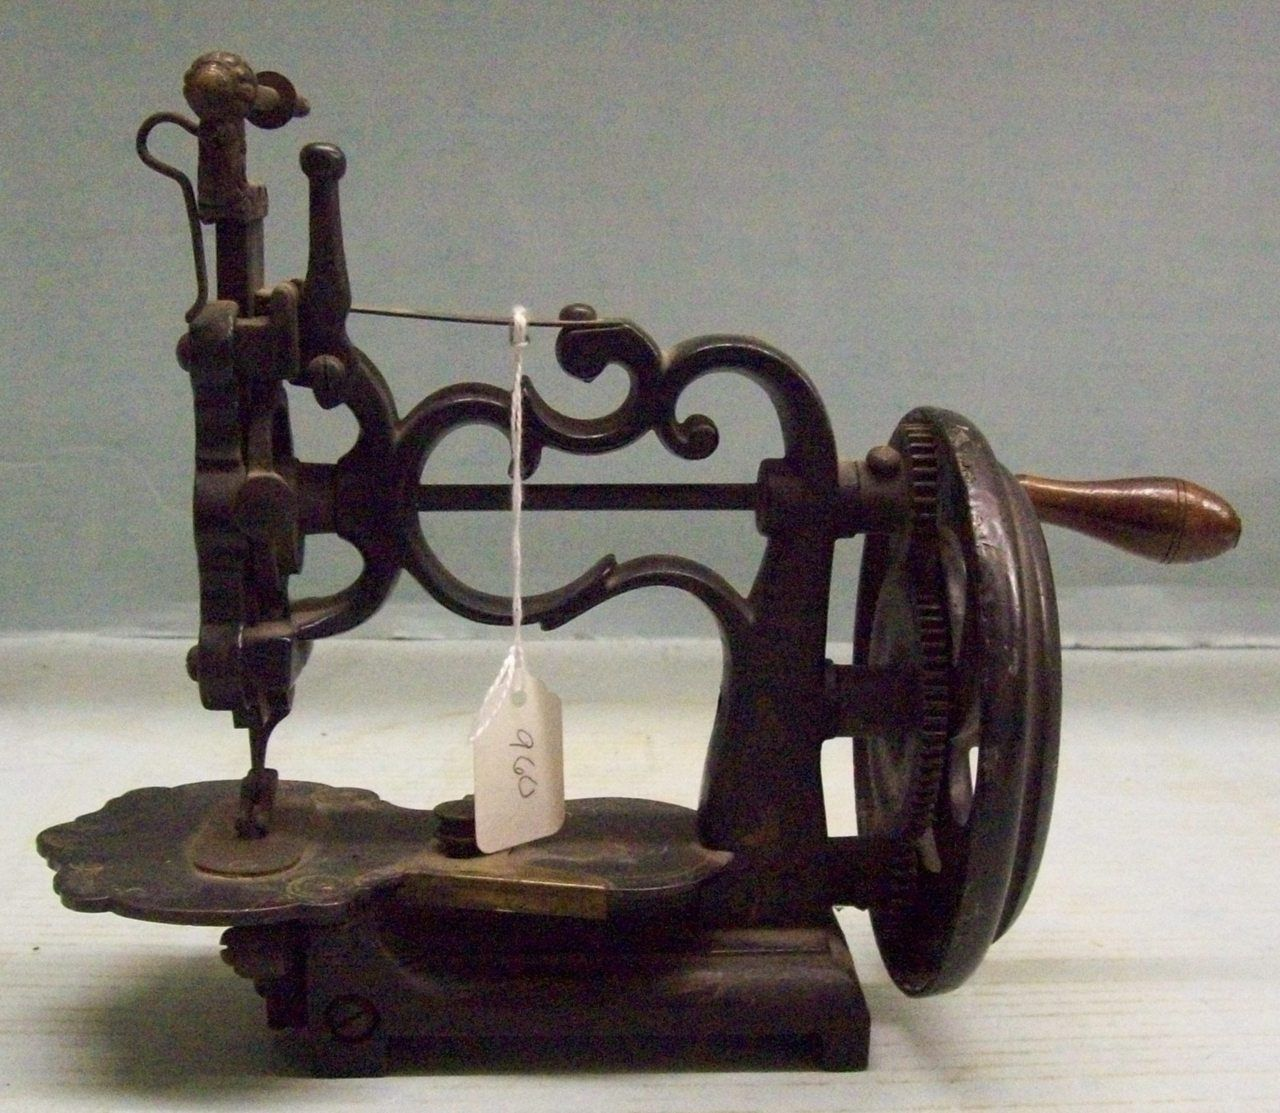 Small hand-crank sewing machine, c. 1855, from the collection of the Chemung Valley History Museum